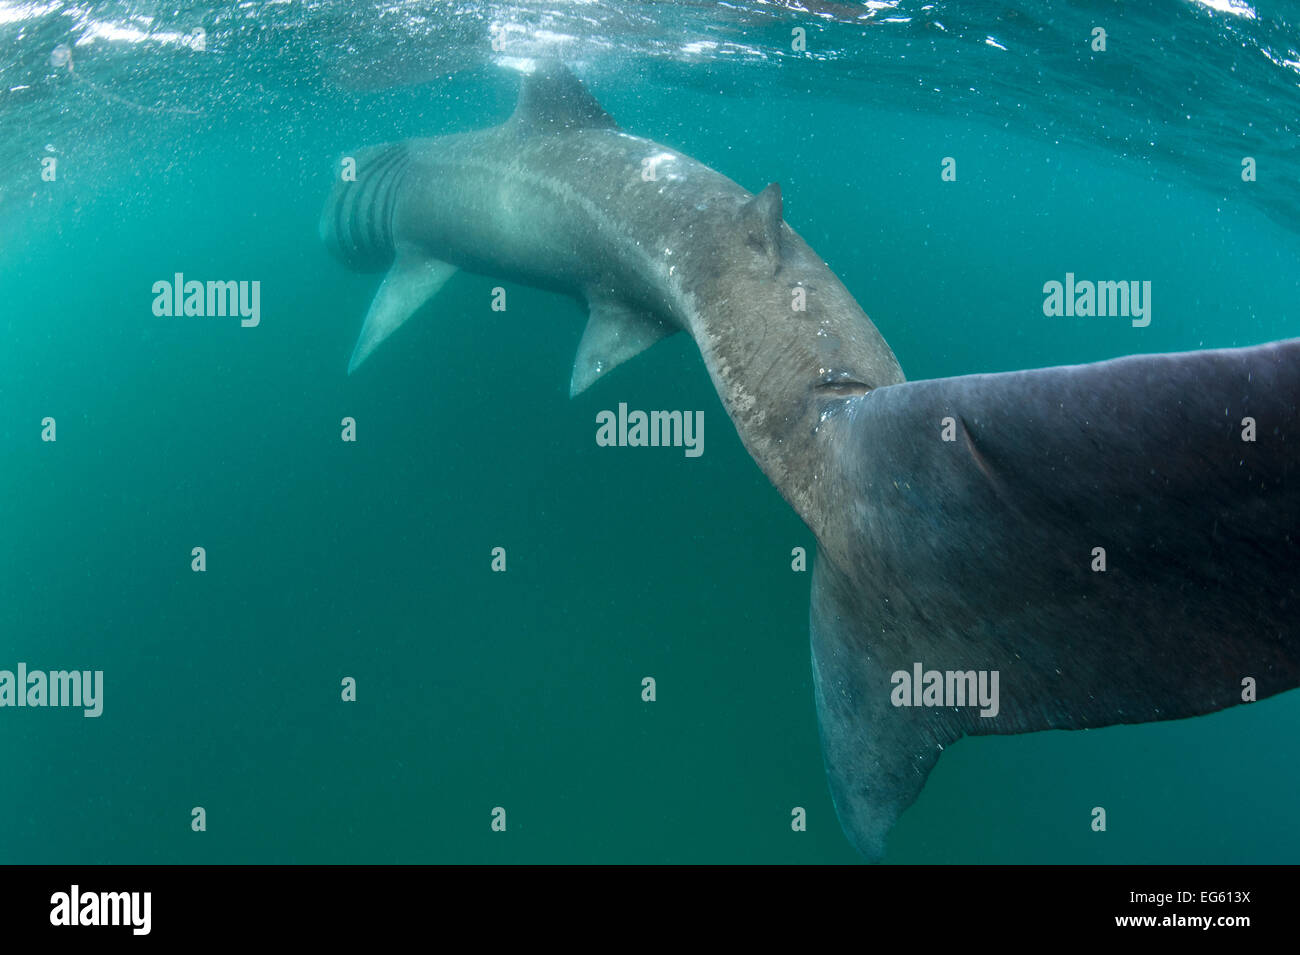 Rear view of Basking shark (Cetorhinus maximus) feeding on plankton, visible as white dots, in the surface waters - Stock Image